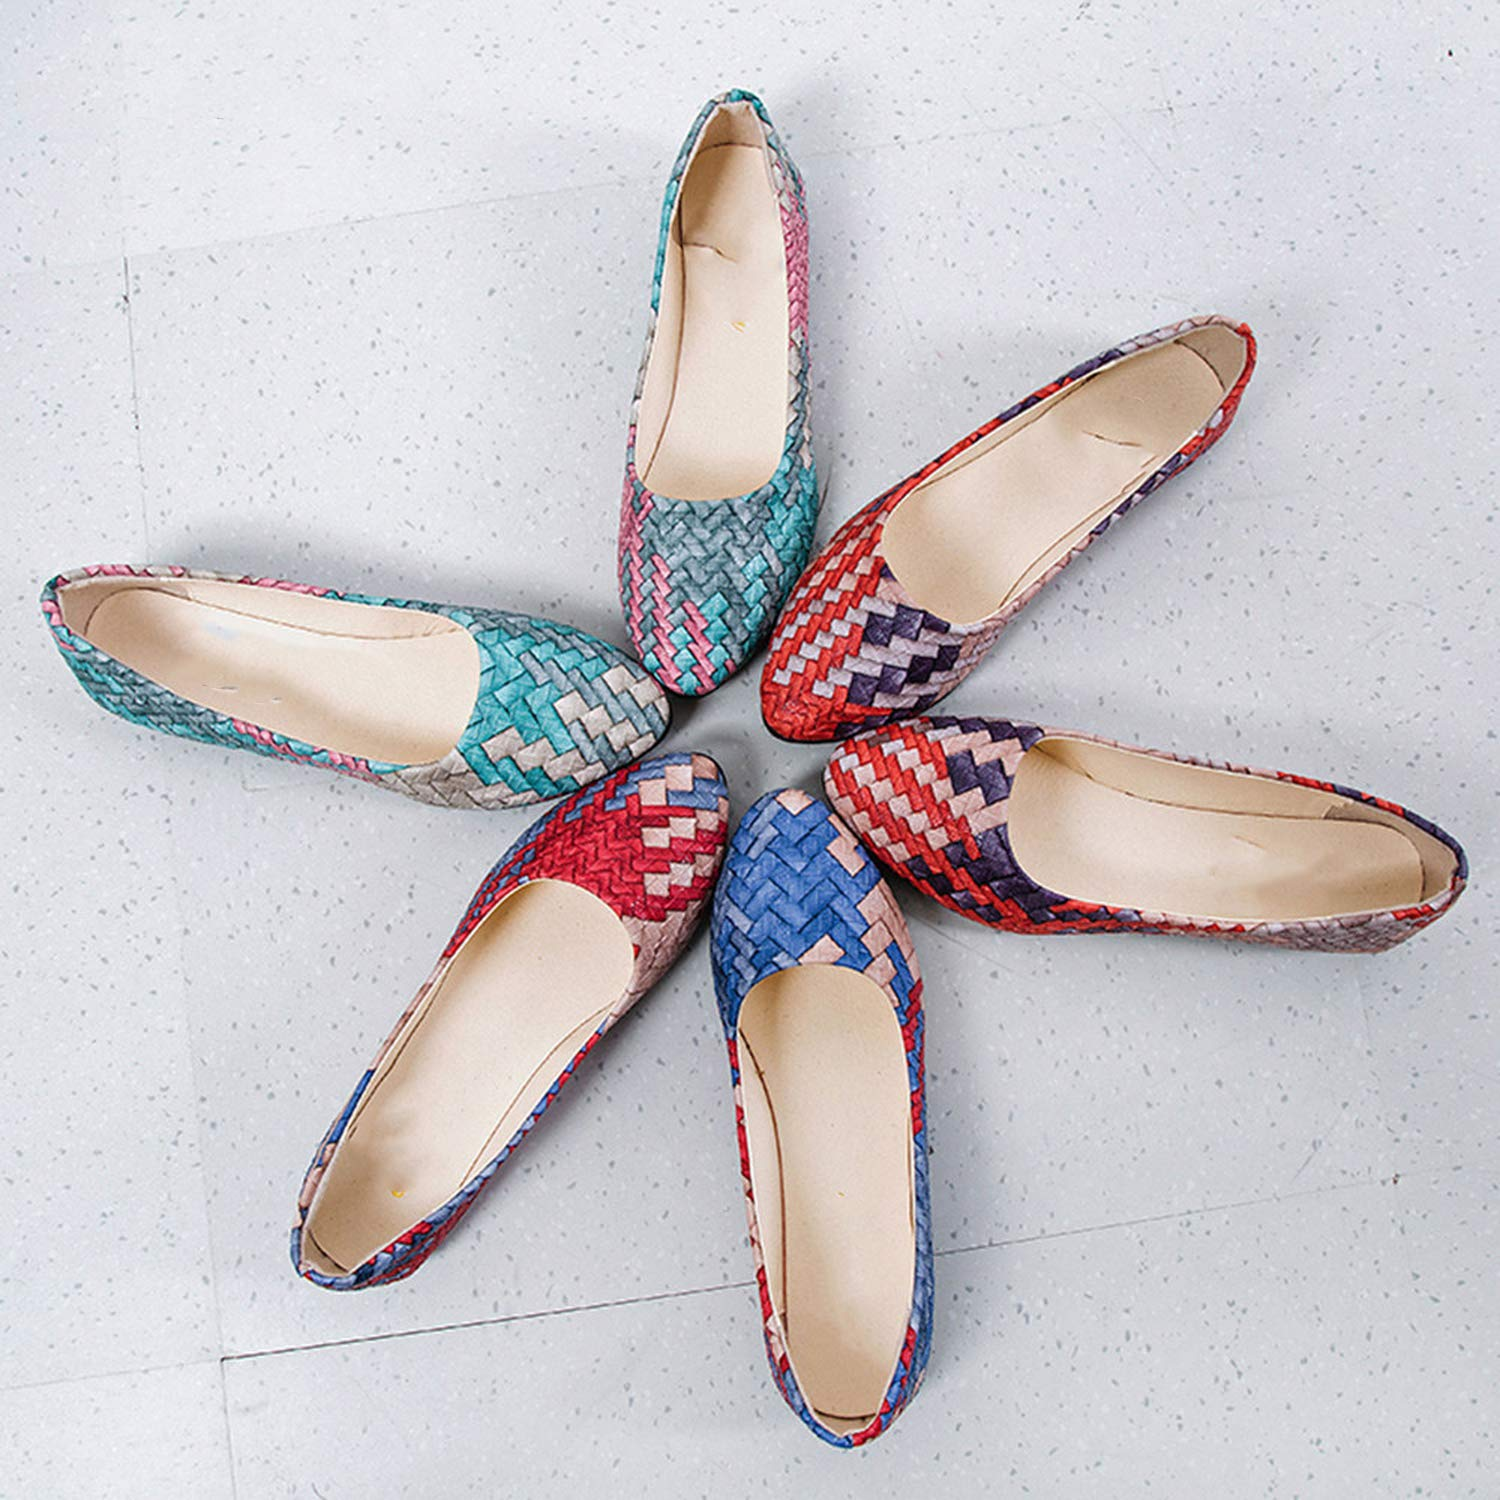 Alfalfa Plant Women Mixed Colors Casual Shoes Female Pretty Comfortable Slip on Flat Shoes Ballerina Shoes,A,36,